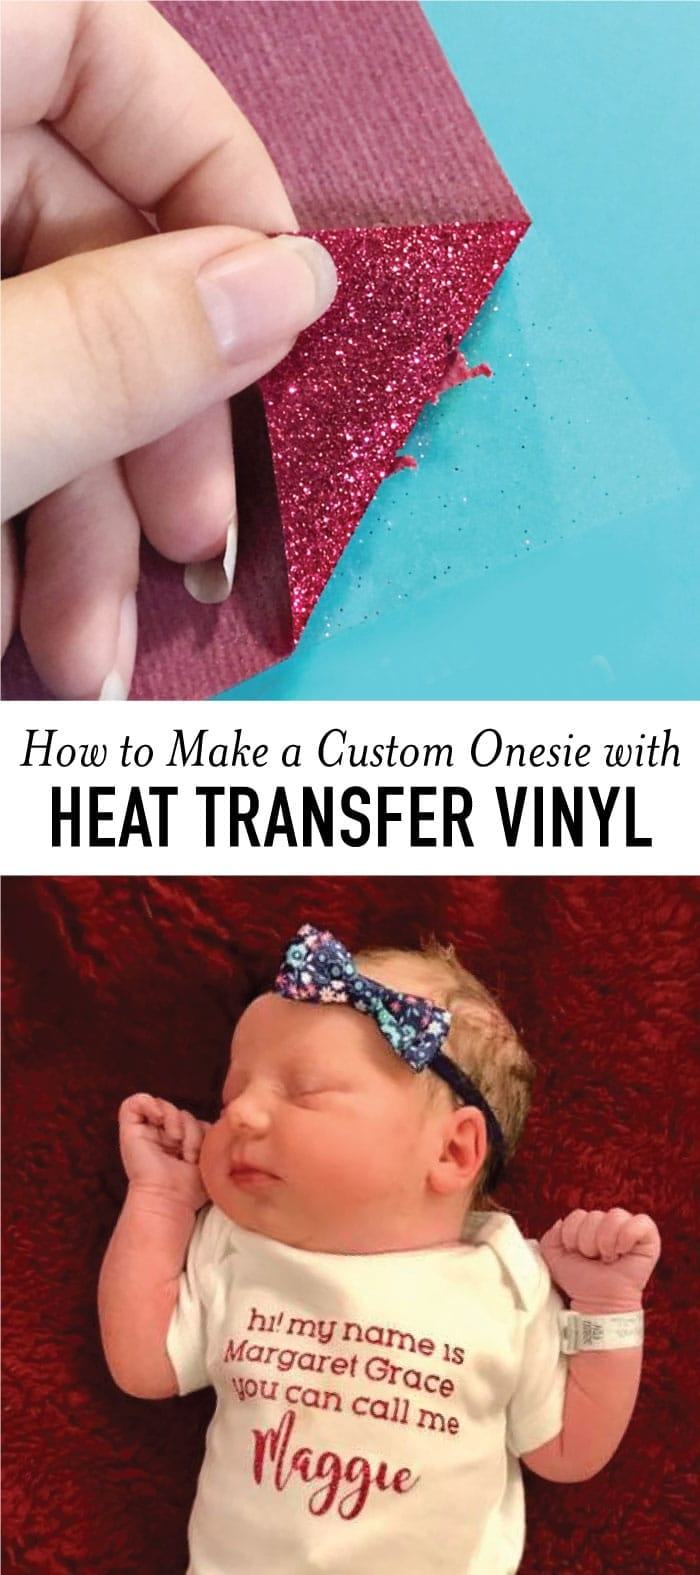 How to Make a Cute Onesie with Heat Transfer Vinyl // New baby on the way? Going to be an auntie? Looking for a fun baby gift idea? See how easy it is to make a custom onesie with heat transfer vinyl with this simple tutorial.